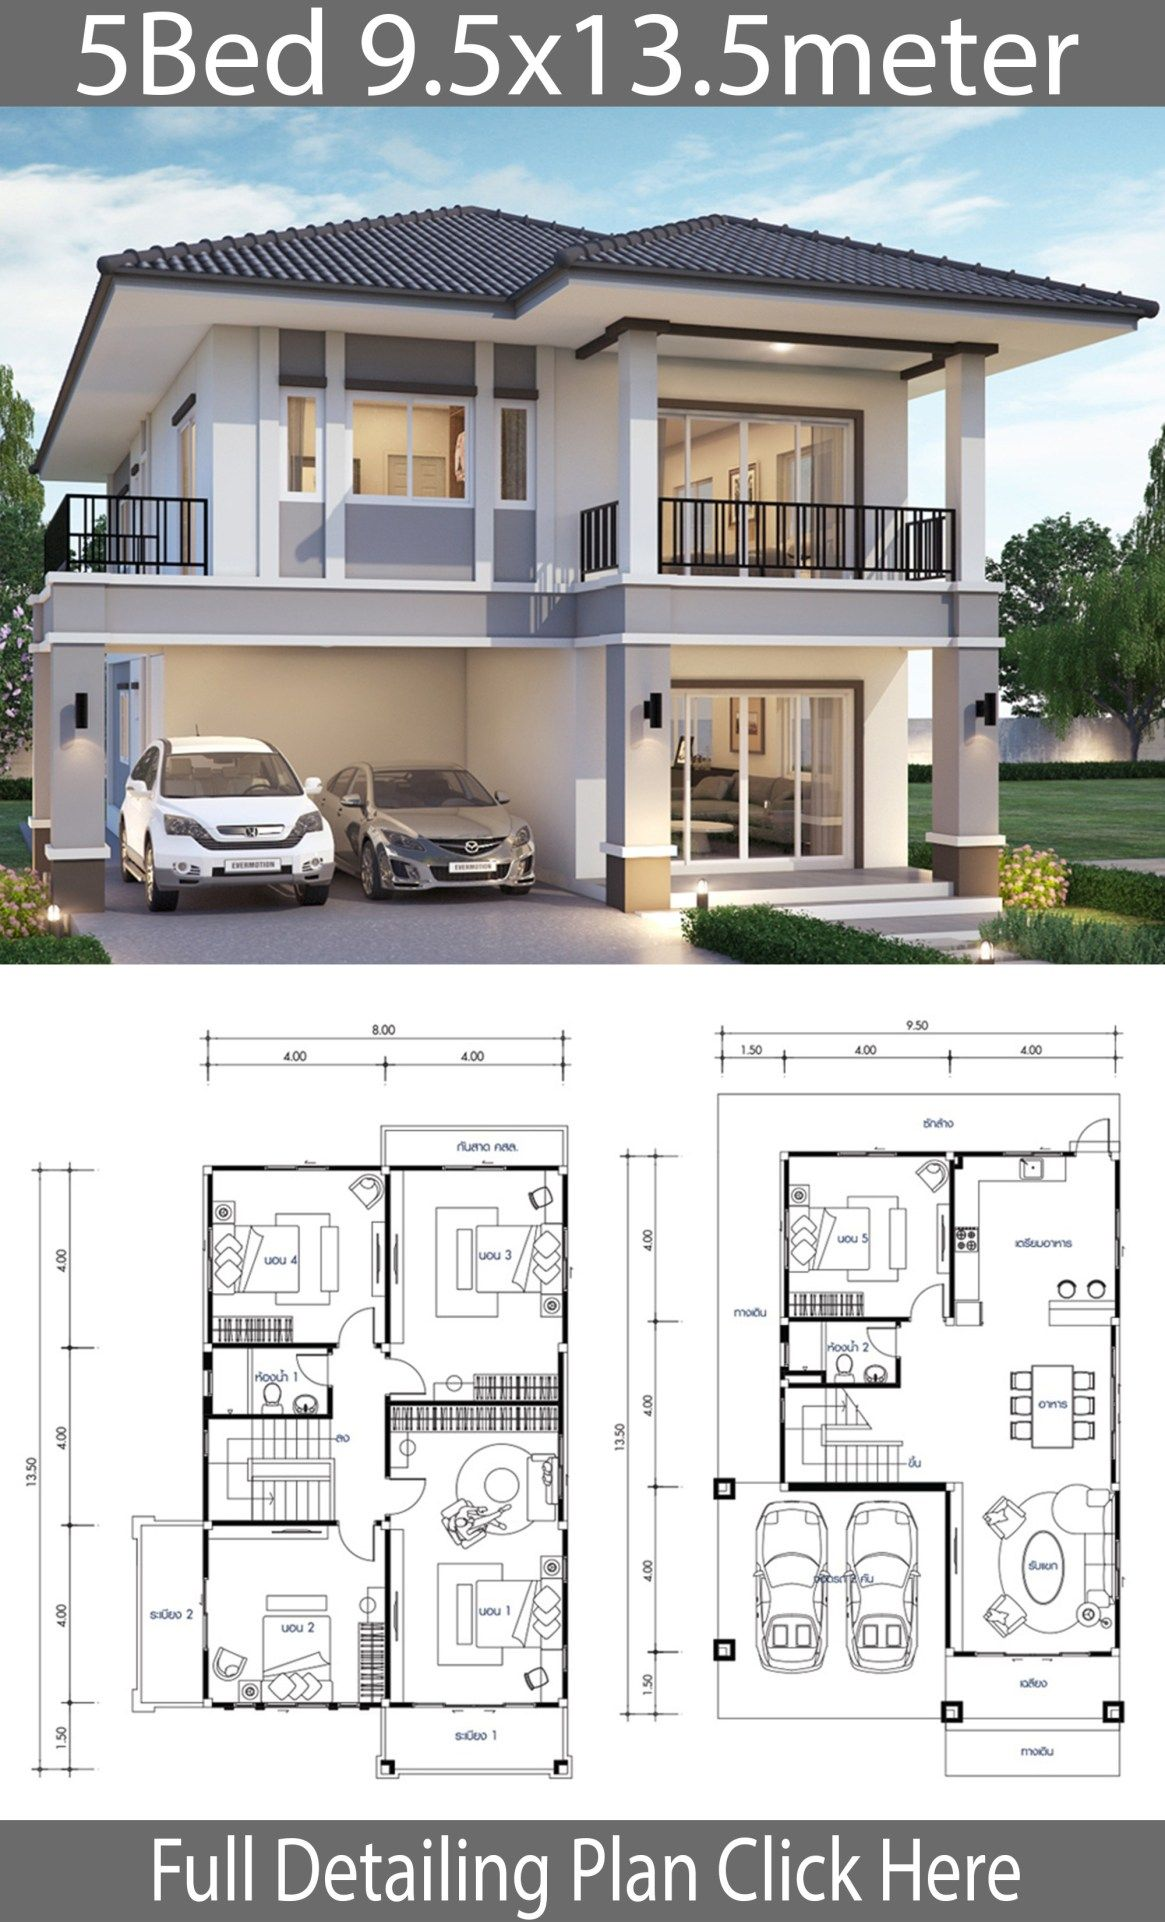 House Design 9 5x13 5m With 5 Bedrooms Home Design With Plansearch Duplex House Design Beautiful House Plans Modern House Plans